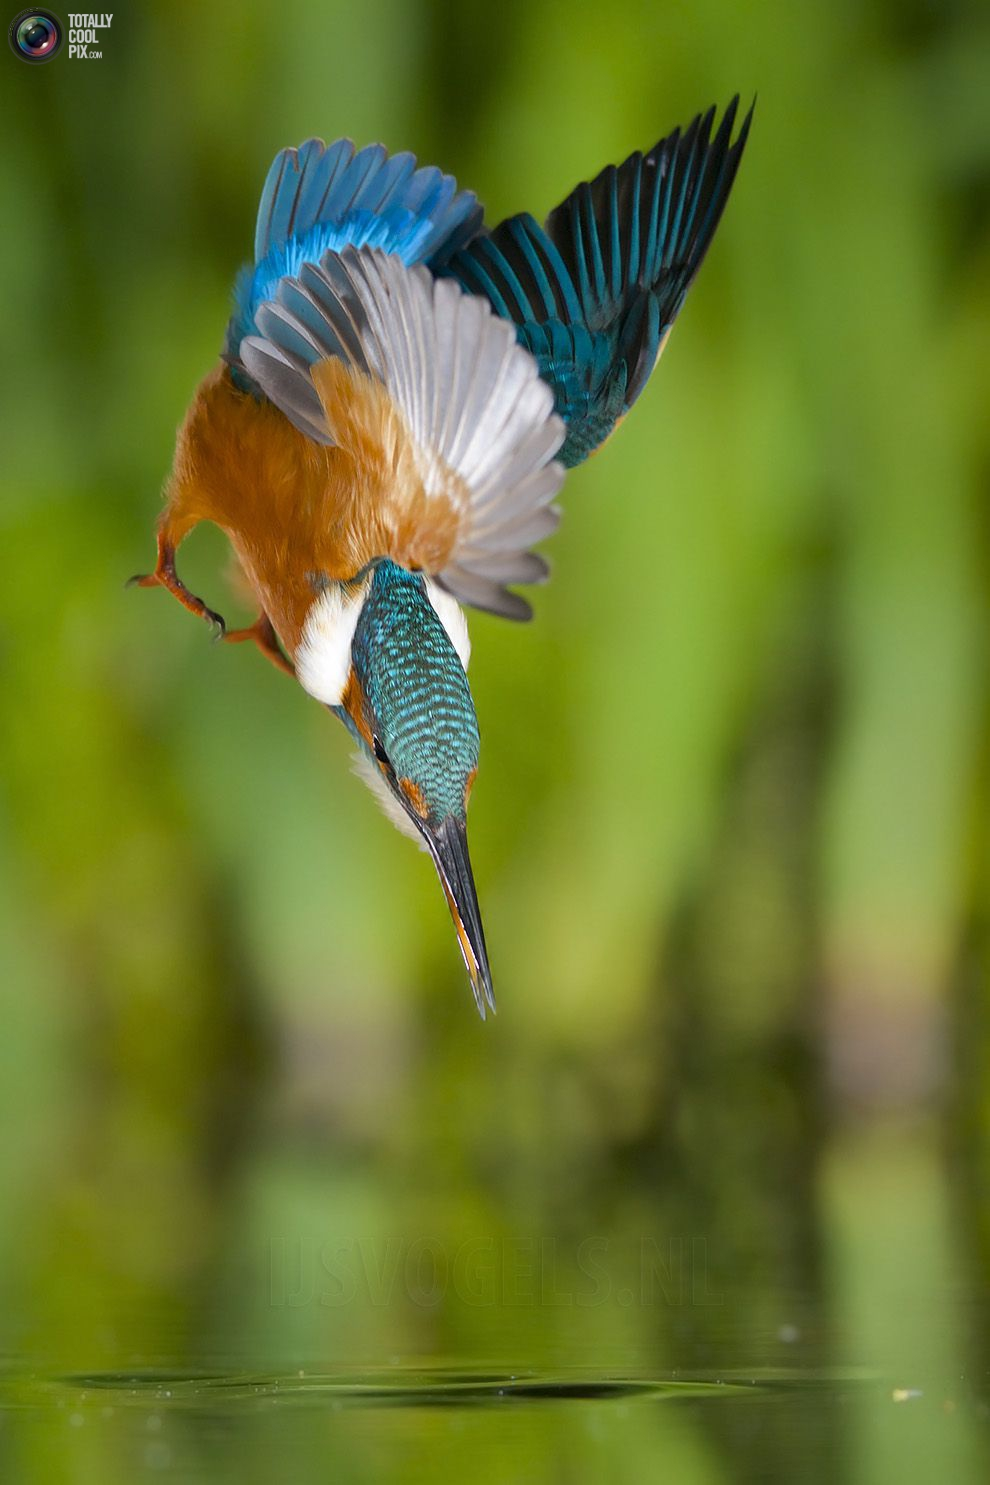 Stunning footage of catching fish by Kingfisher 07